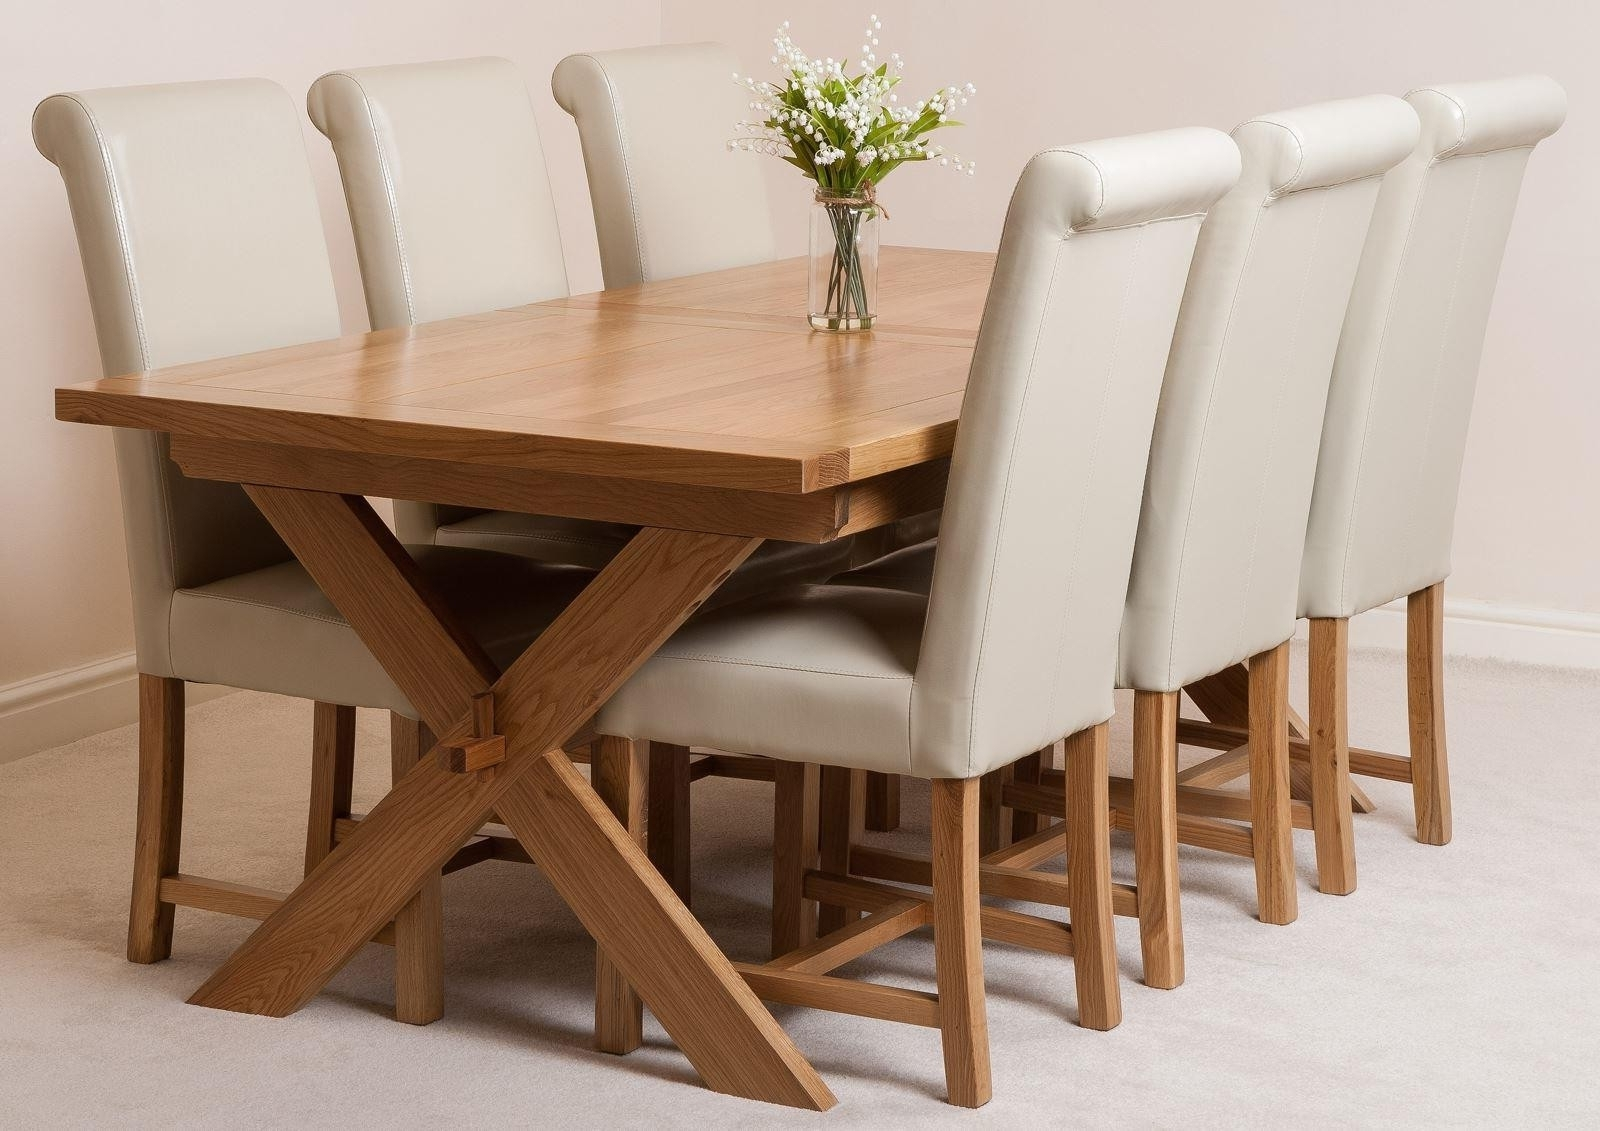 Oak Dining Tables And Fabric Chairs Intended For Preferred Vermont Dining Set With 6 Ivory Chairs (View 14 of 25)